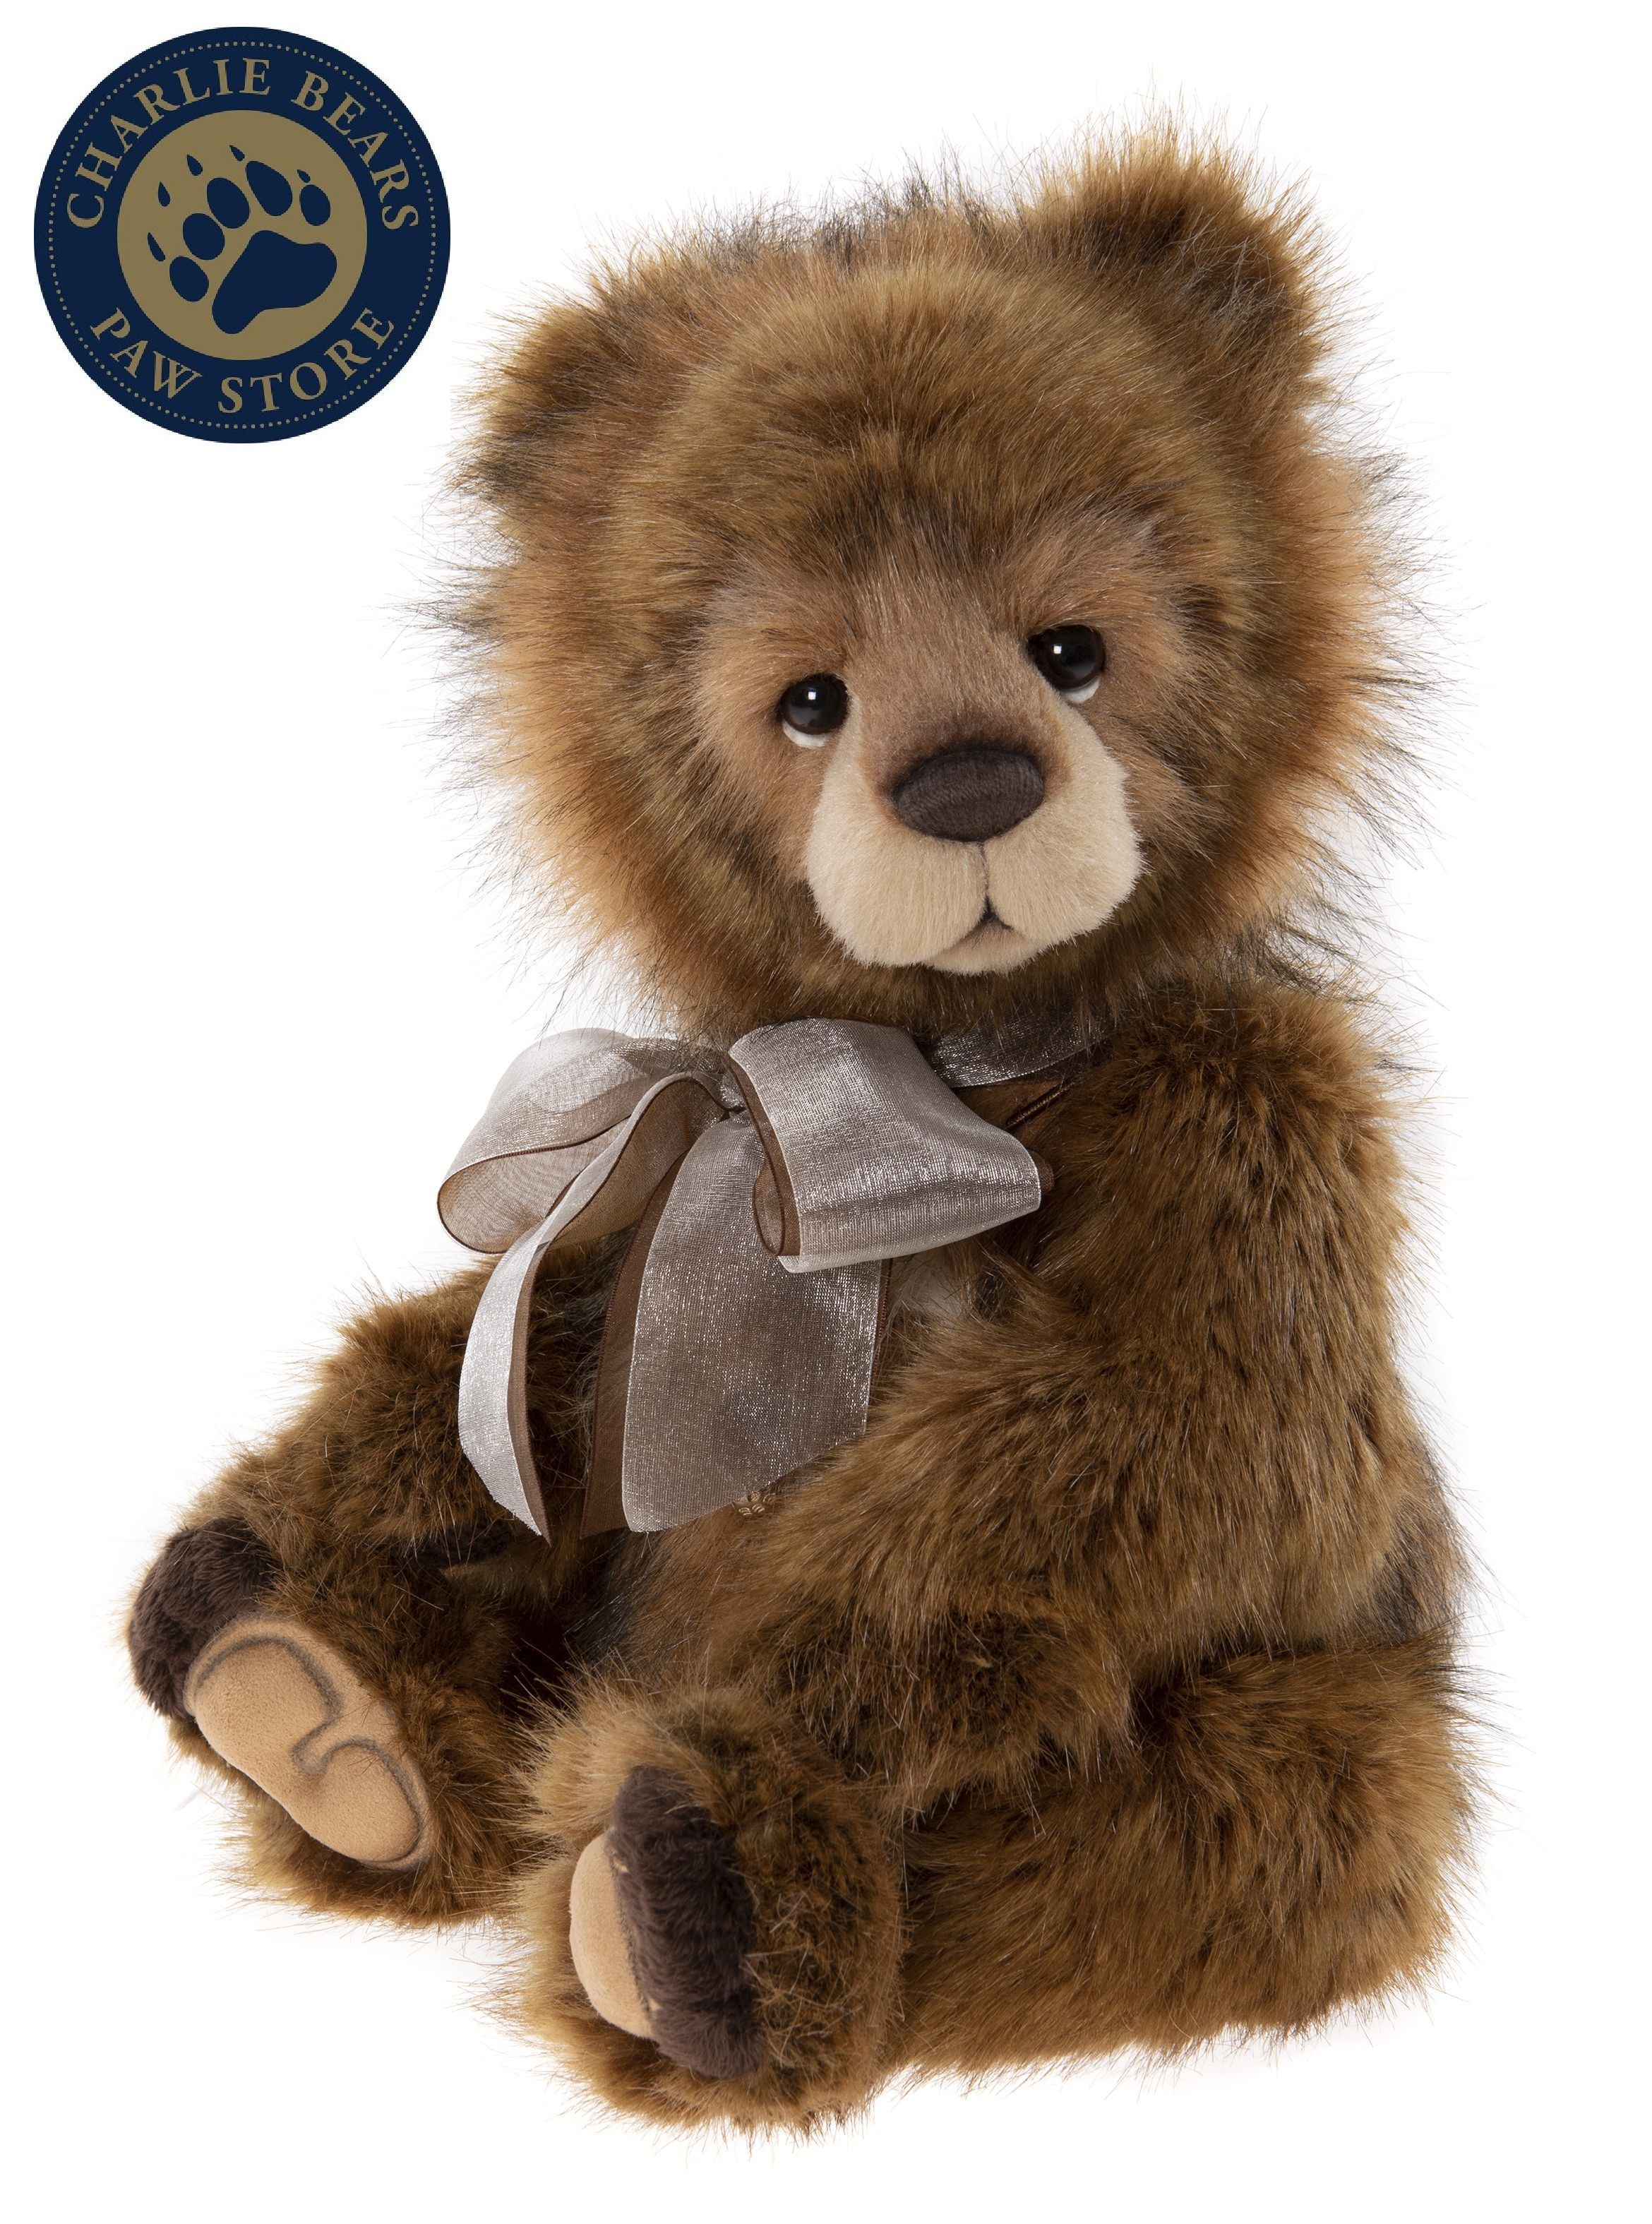 BEARHUGS <br> PAW STORE EXCLUSIVE